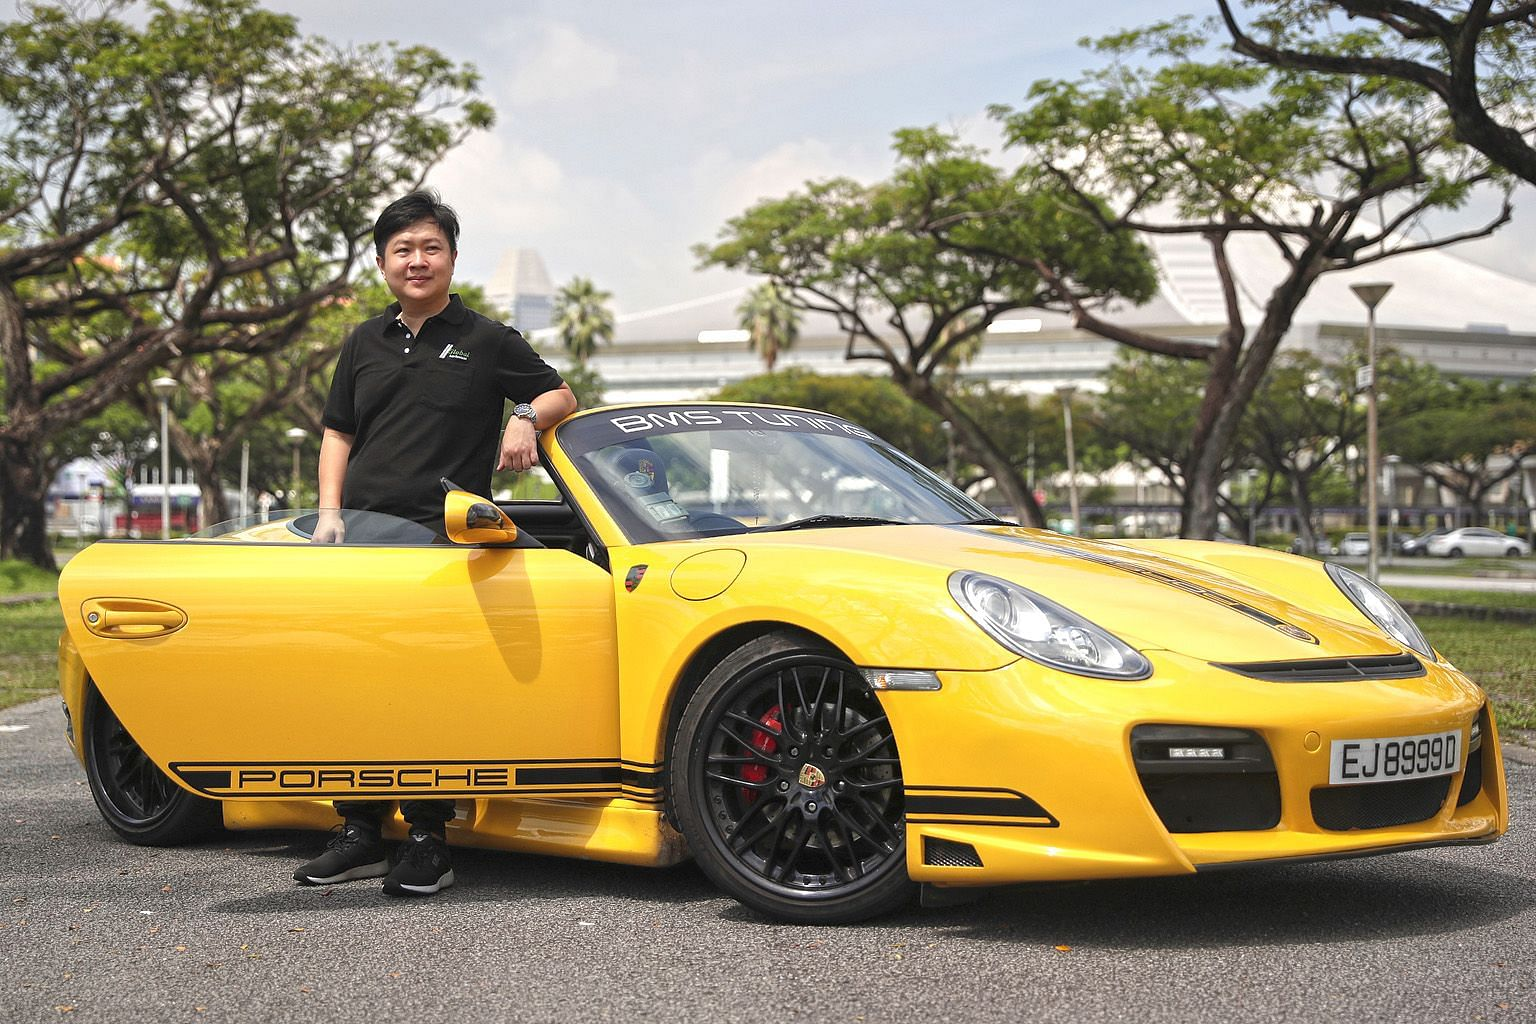 Mr Fed Wu, who runs Allmotoring, with a Porsche being sold on consignment. He said that out of the 30 cars he has in his showroom, 20 are on consignment. In the past, consignment cars made up only 20 per cent of his stock. The cars on consignment are